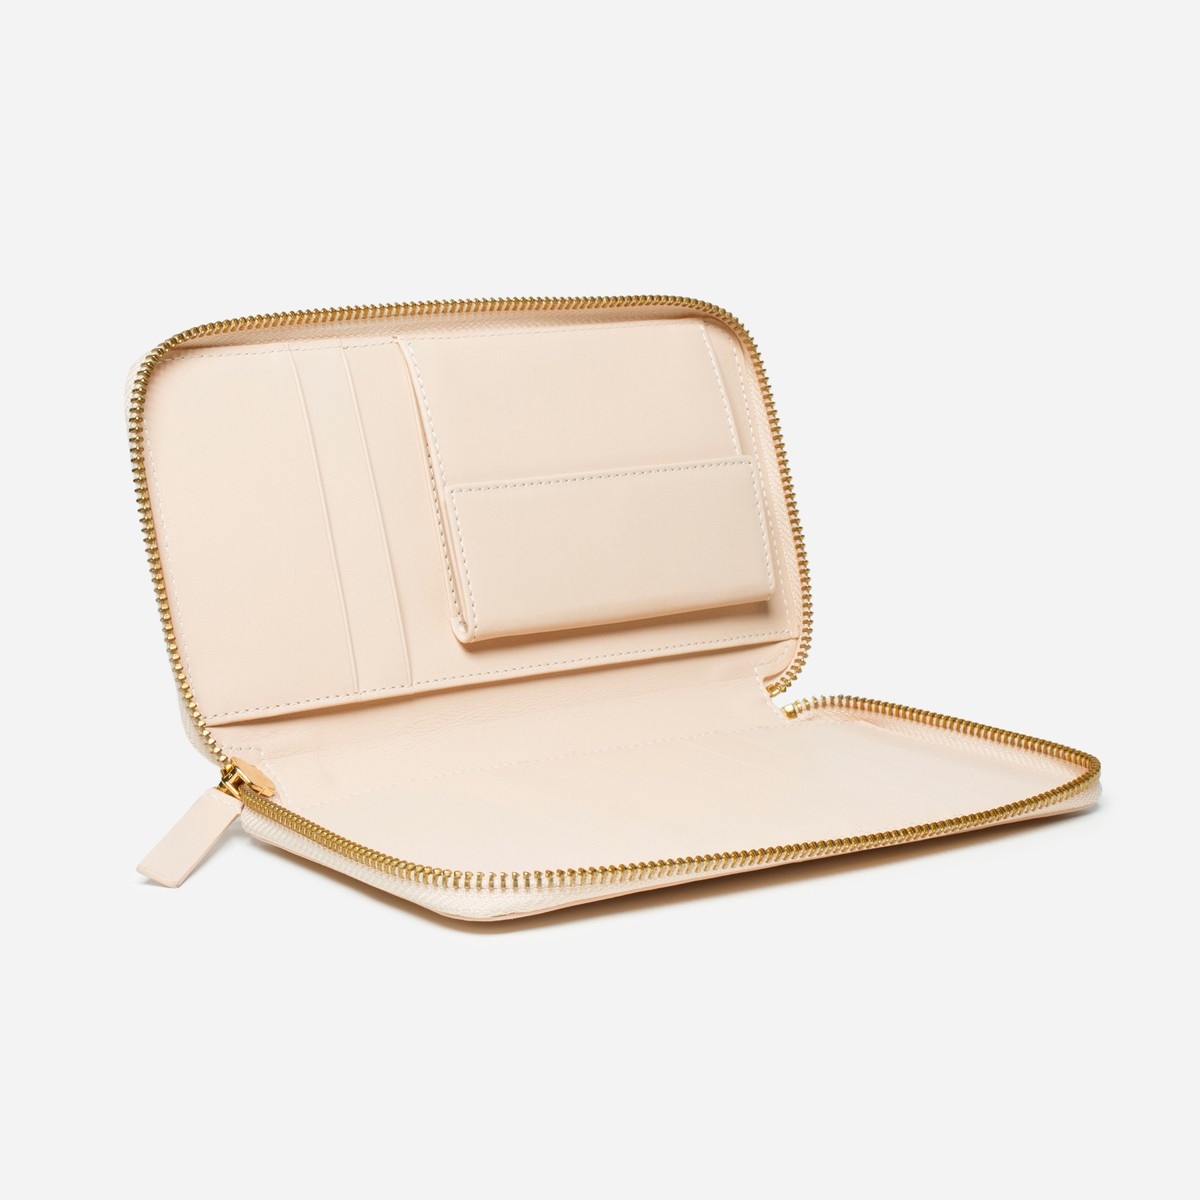 everlane-leather-wallet-7